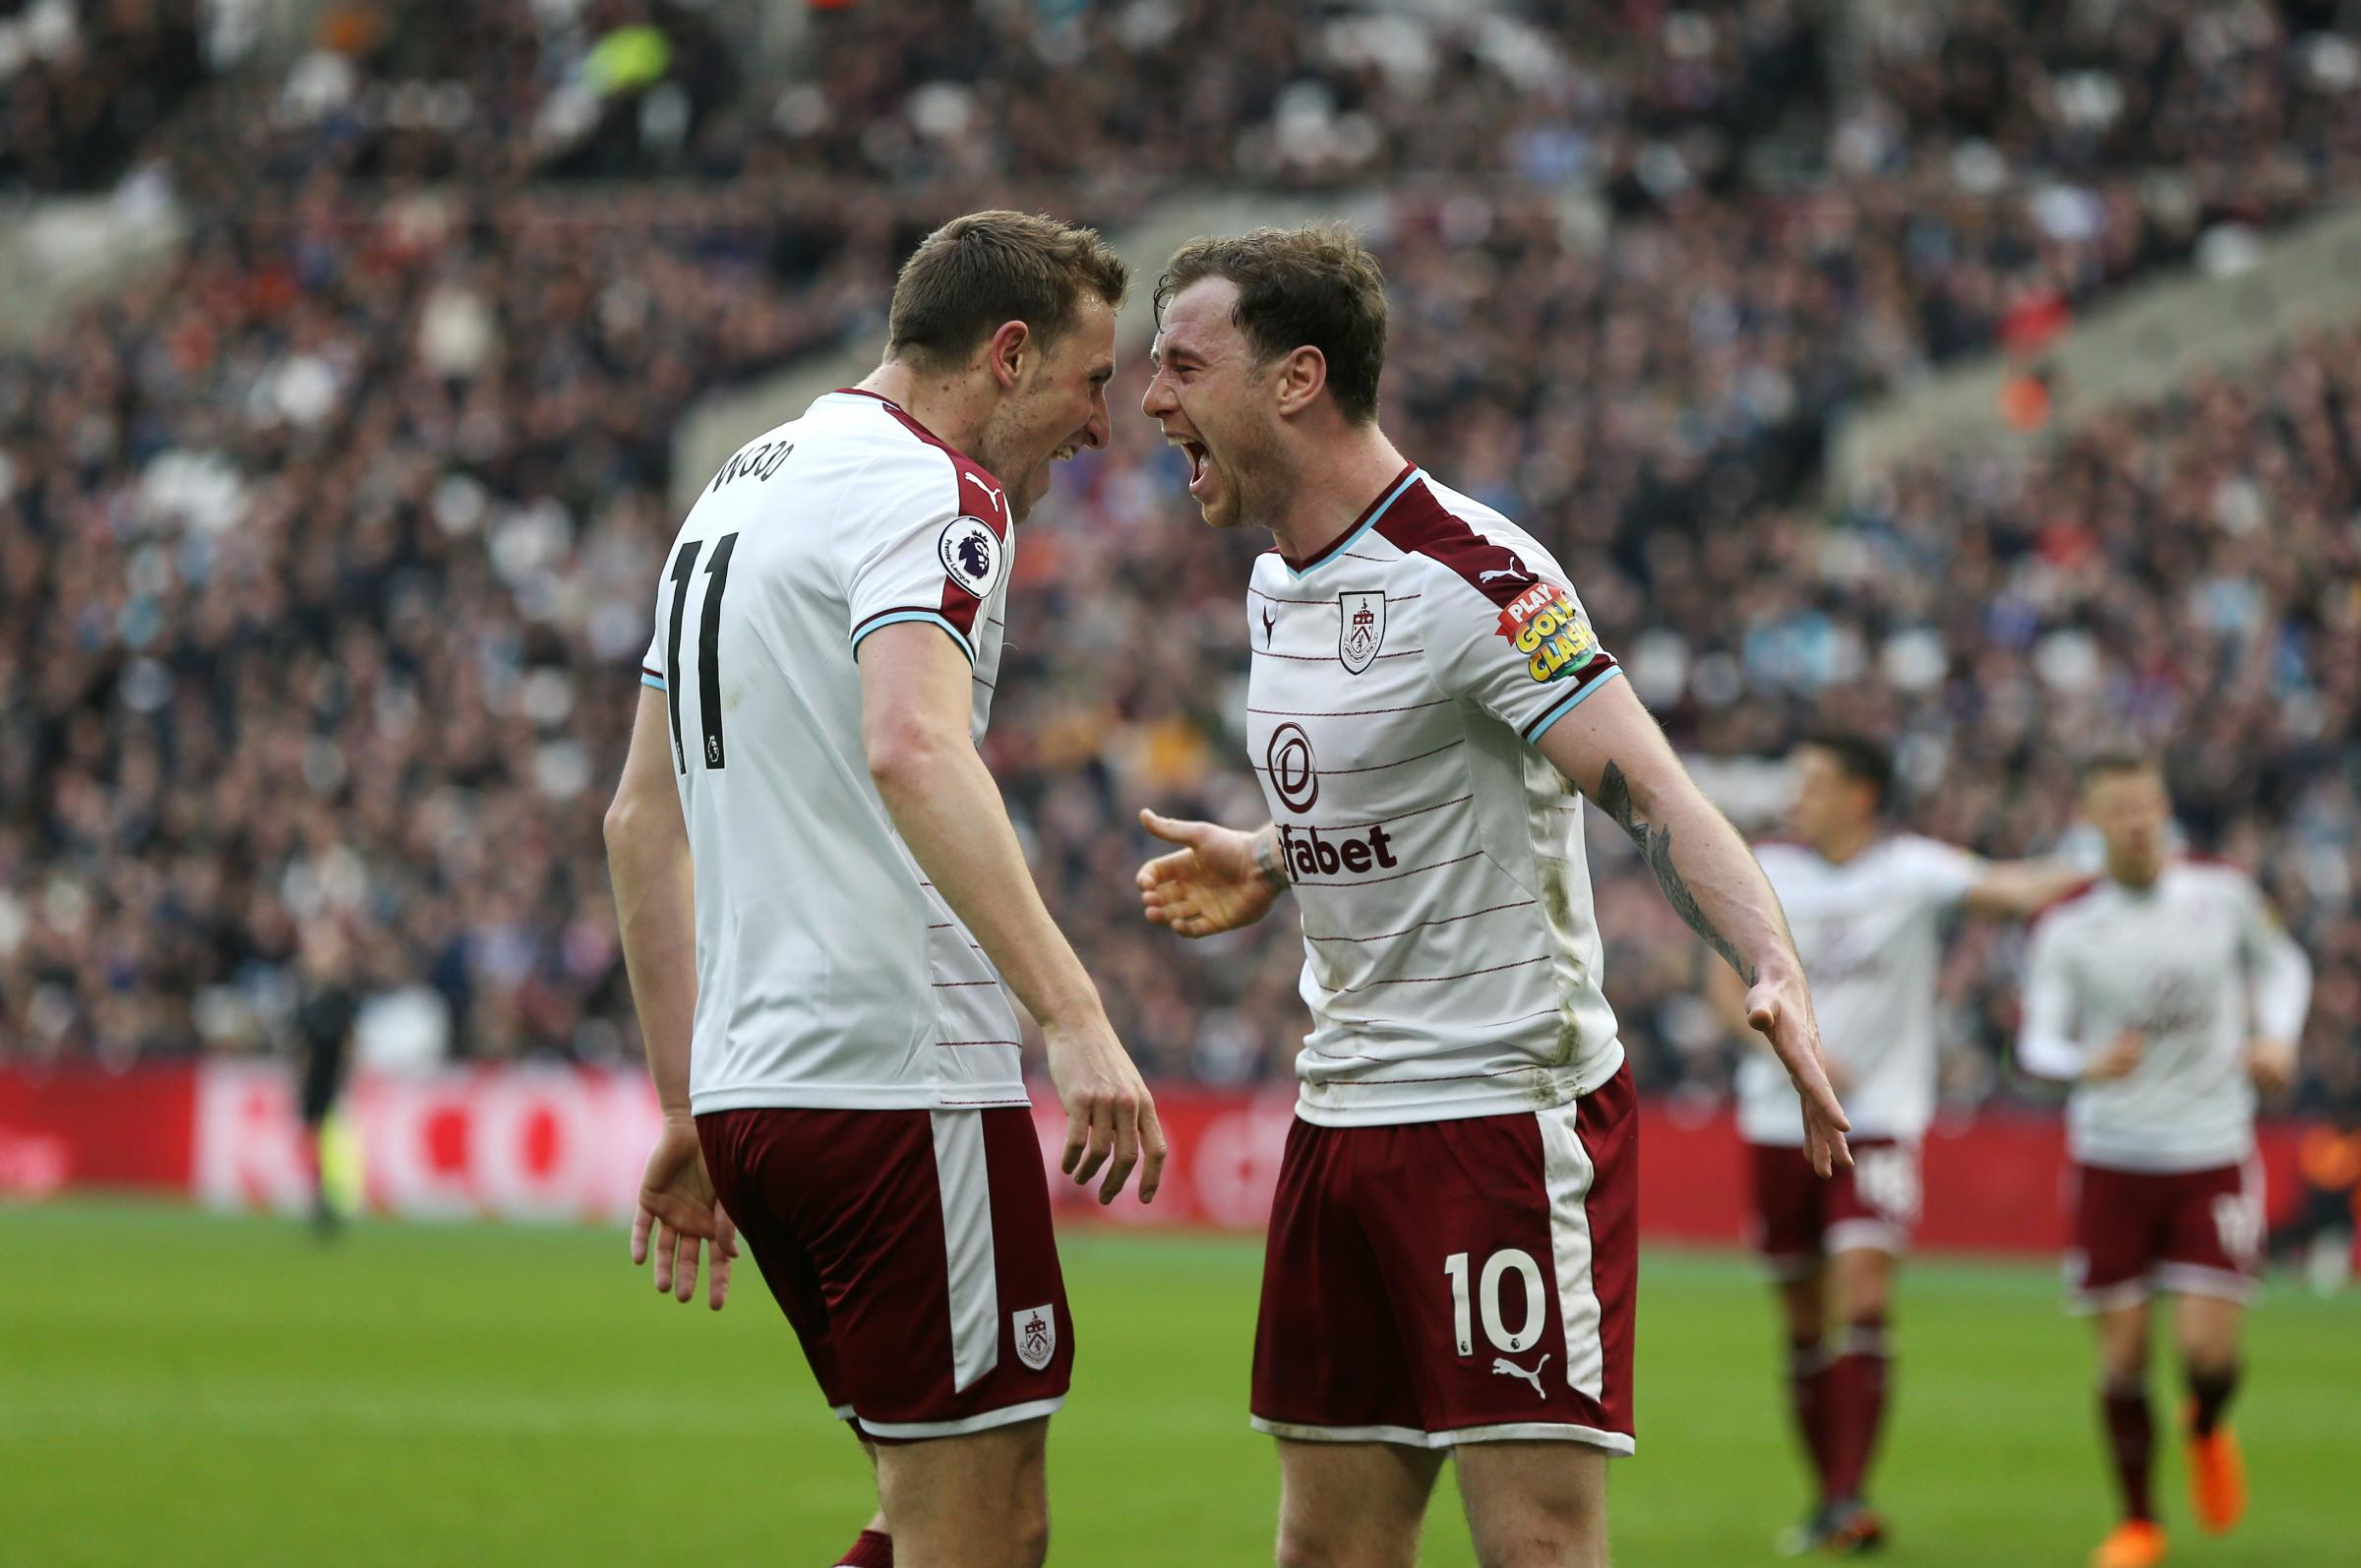 Ashley Barnes and Chris Wood have been in fine form for Burnley recently